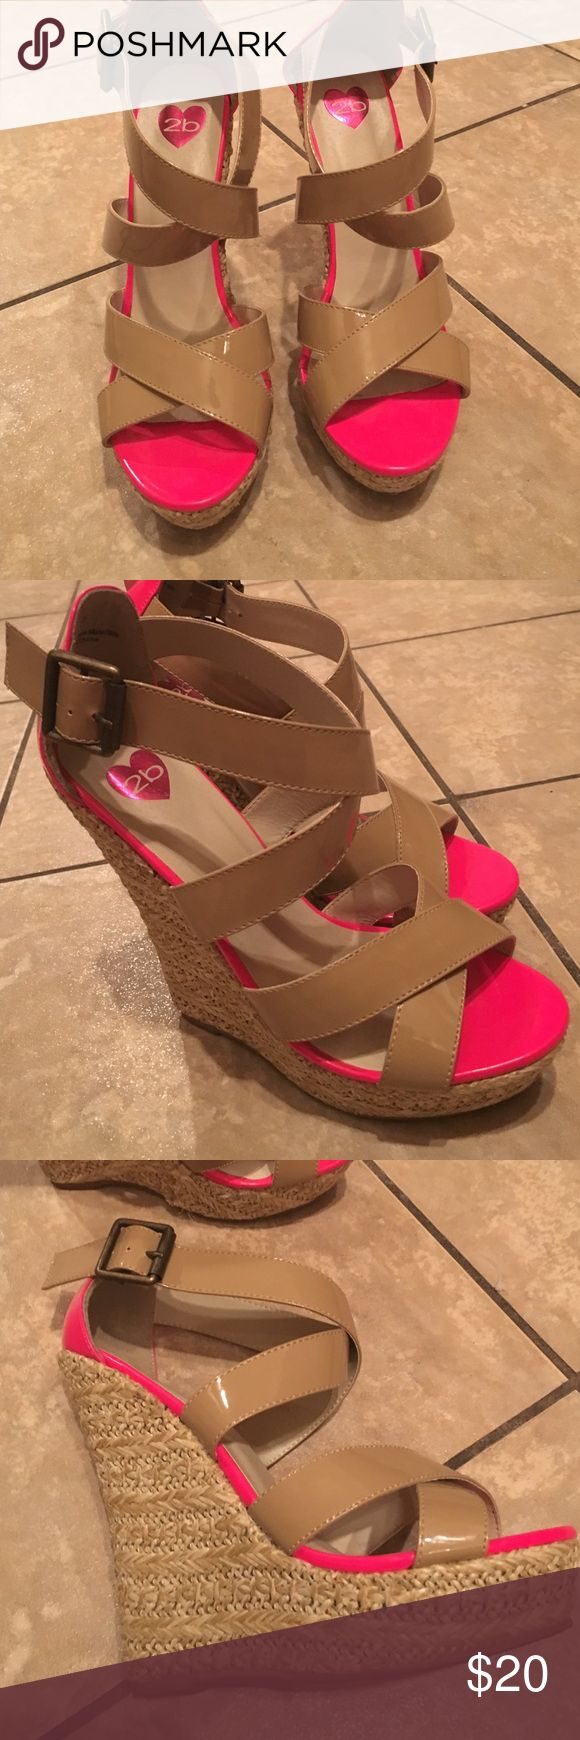 Nude wedges with hot pink lining, size 7 Gorgeous summer nude wedge with hot pink lining! Size 7, 2b Bebe bebe Shoes Wedges